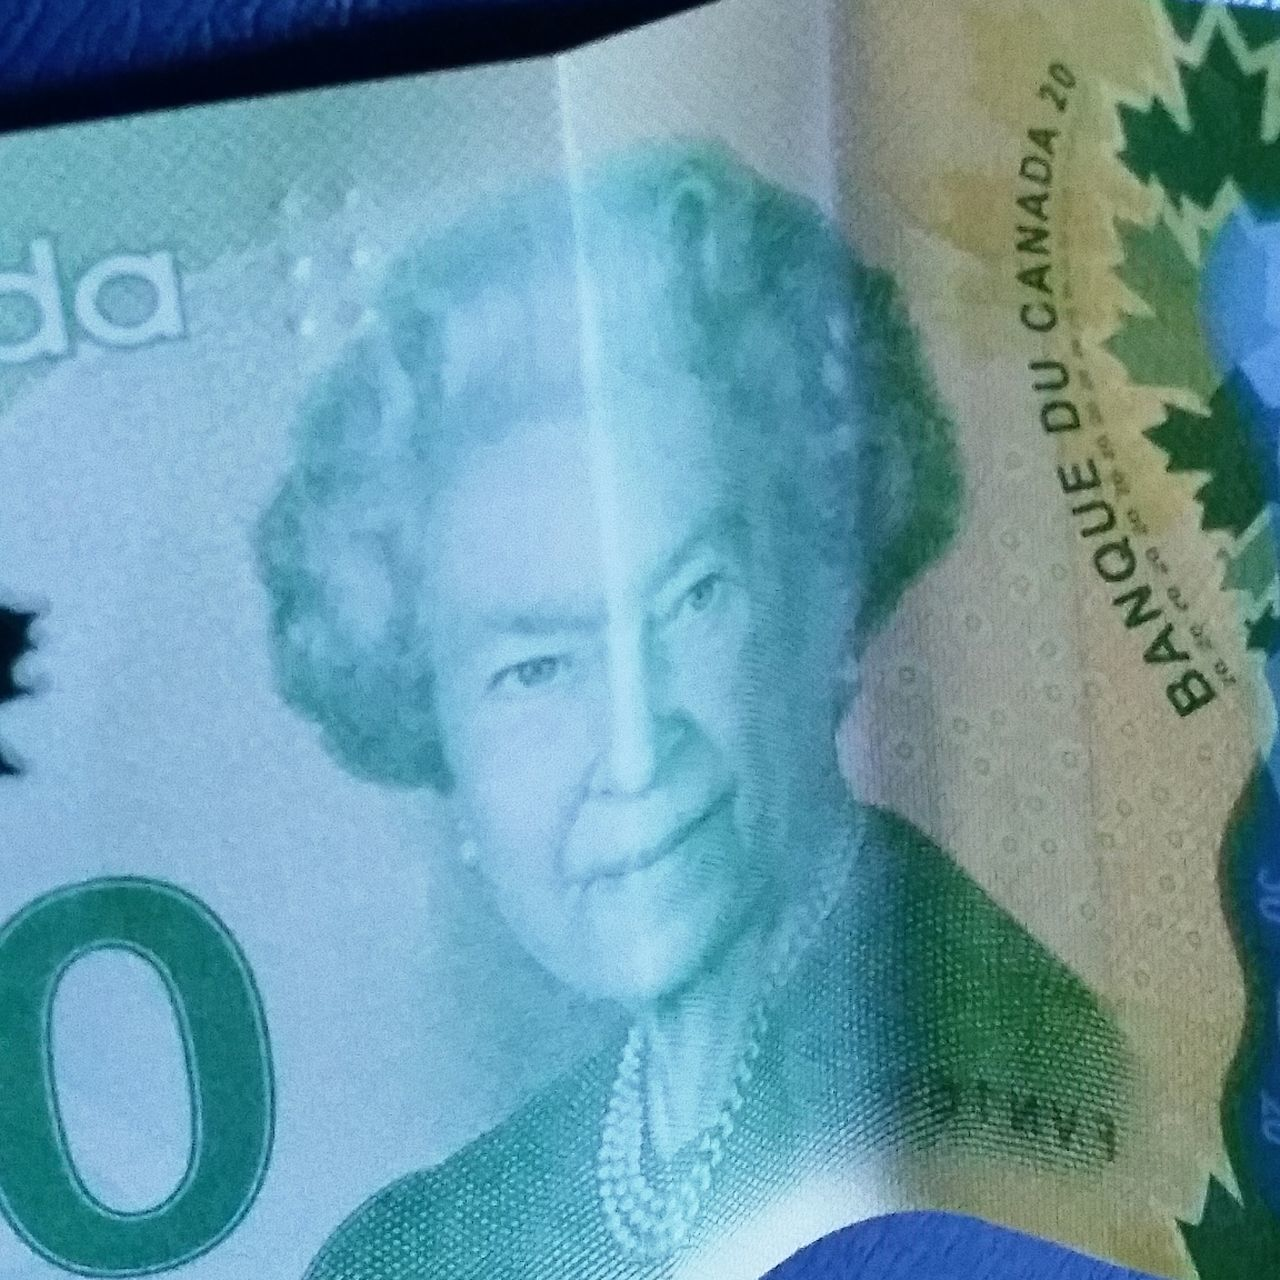 Showcase March One Queen Two Faces Queen QEII Drama Queen  Canadian Dollars Happy Face